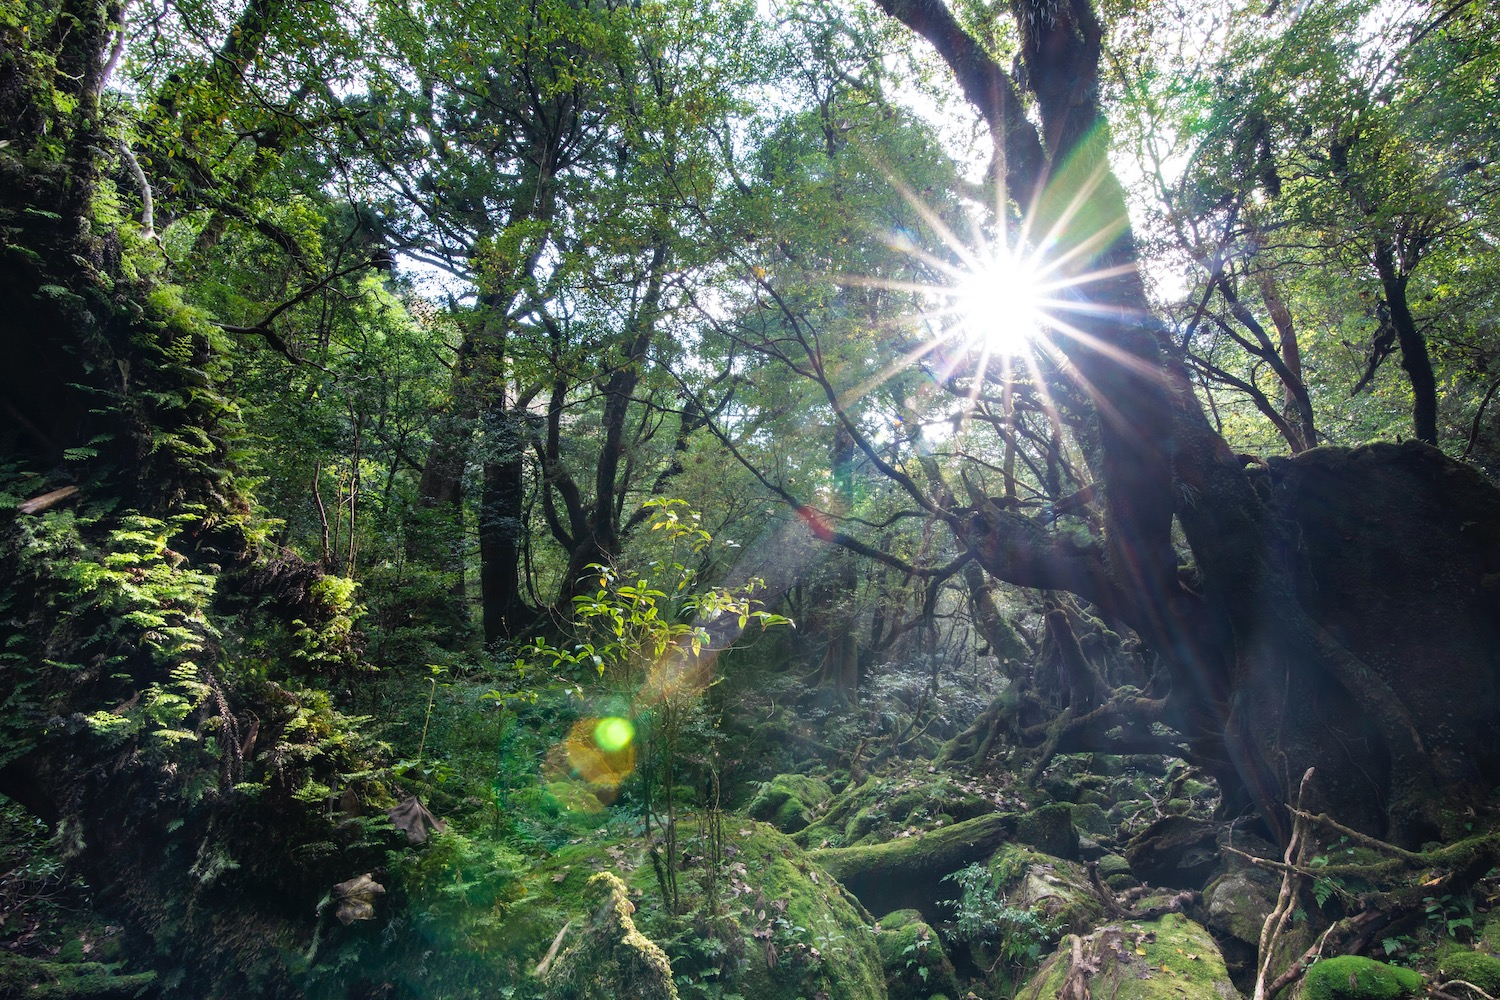 Princess Mononoke Forest in Yakushima Island, Japan